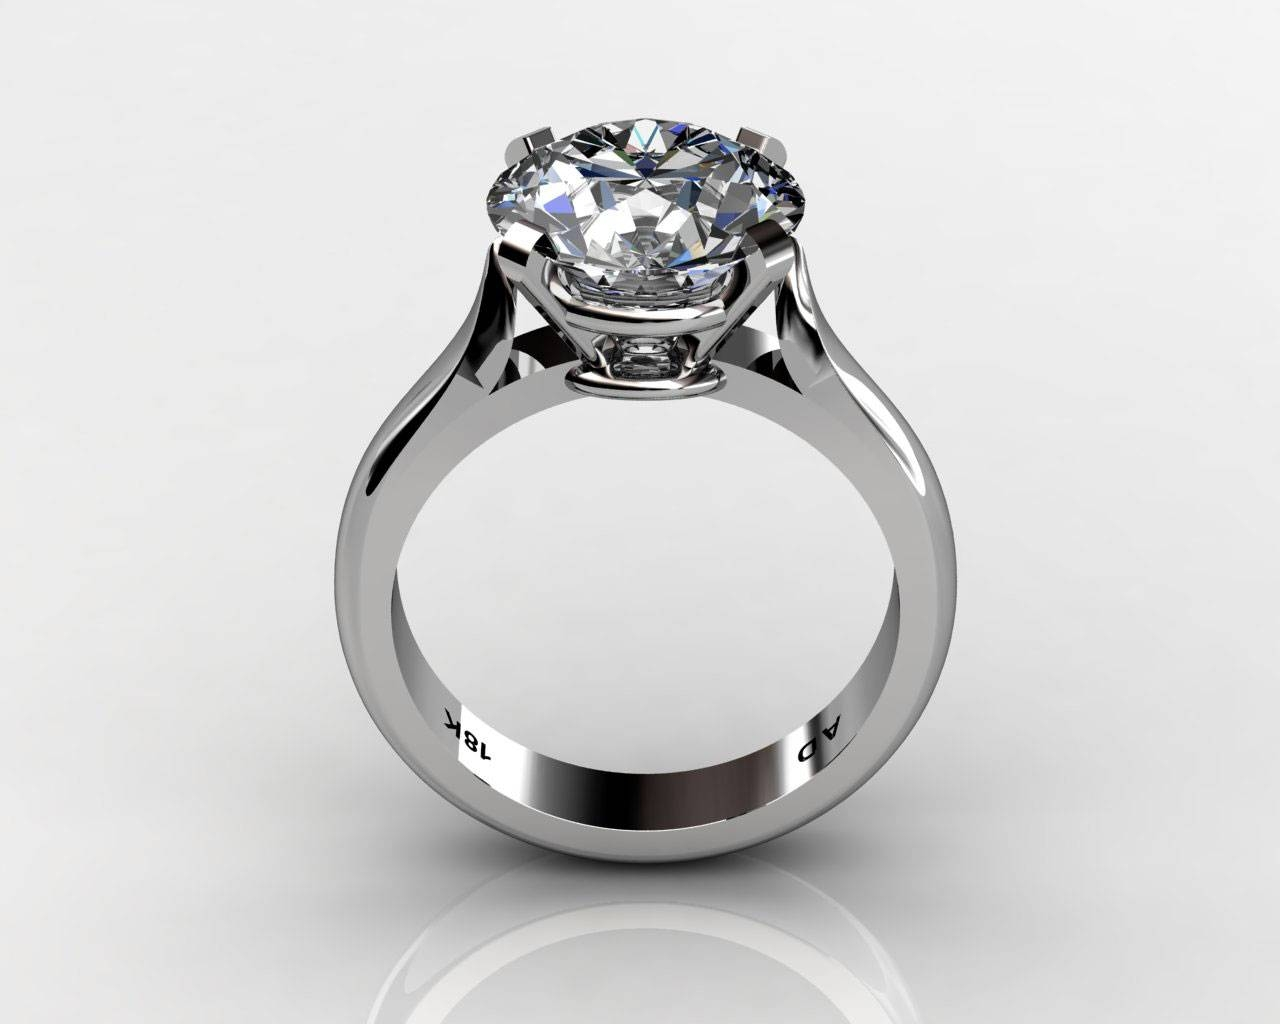 Round Cut Diamond Solitaire Engagement Wedding Ring South Bay Gold – Regarding Diamond Solitaire Wedding Rings (View 7 of 15)